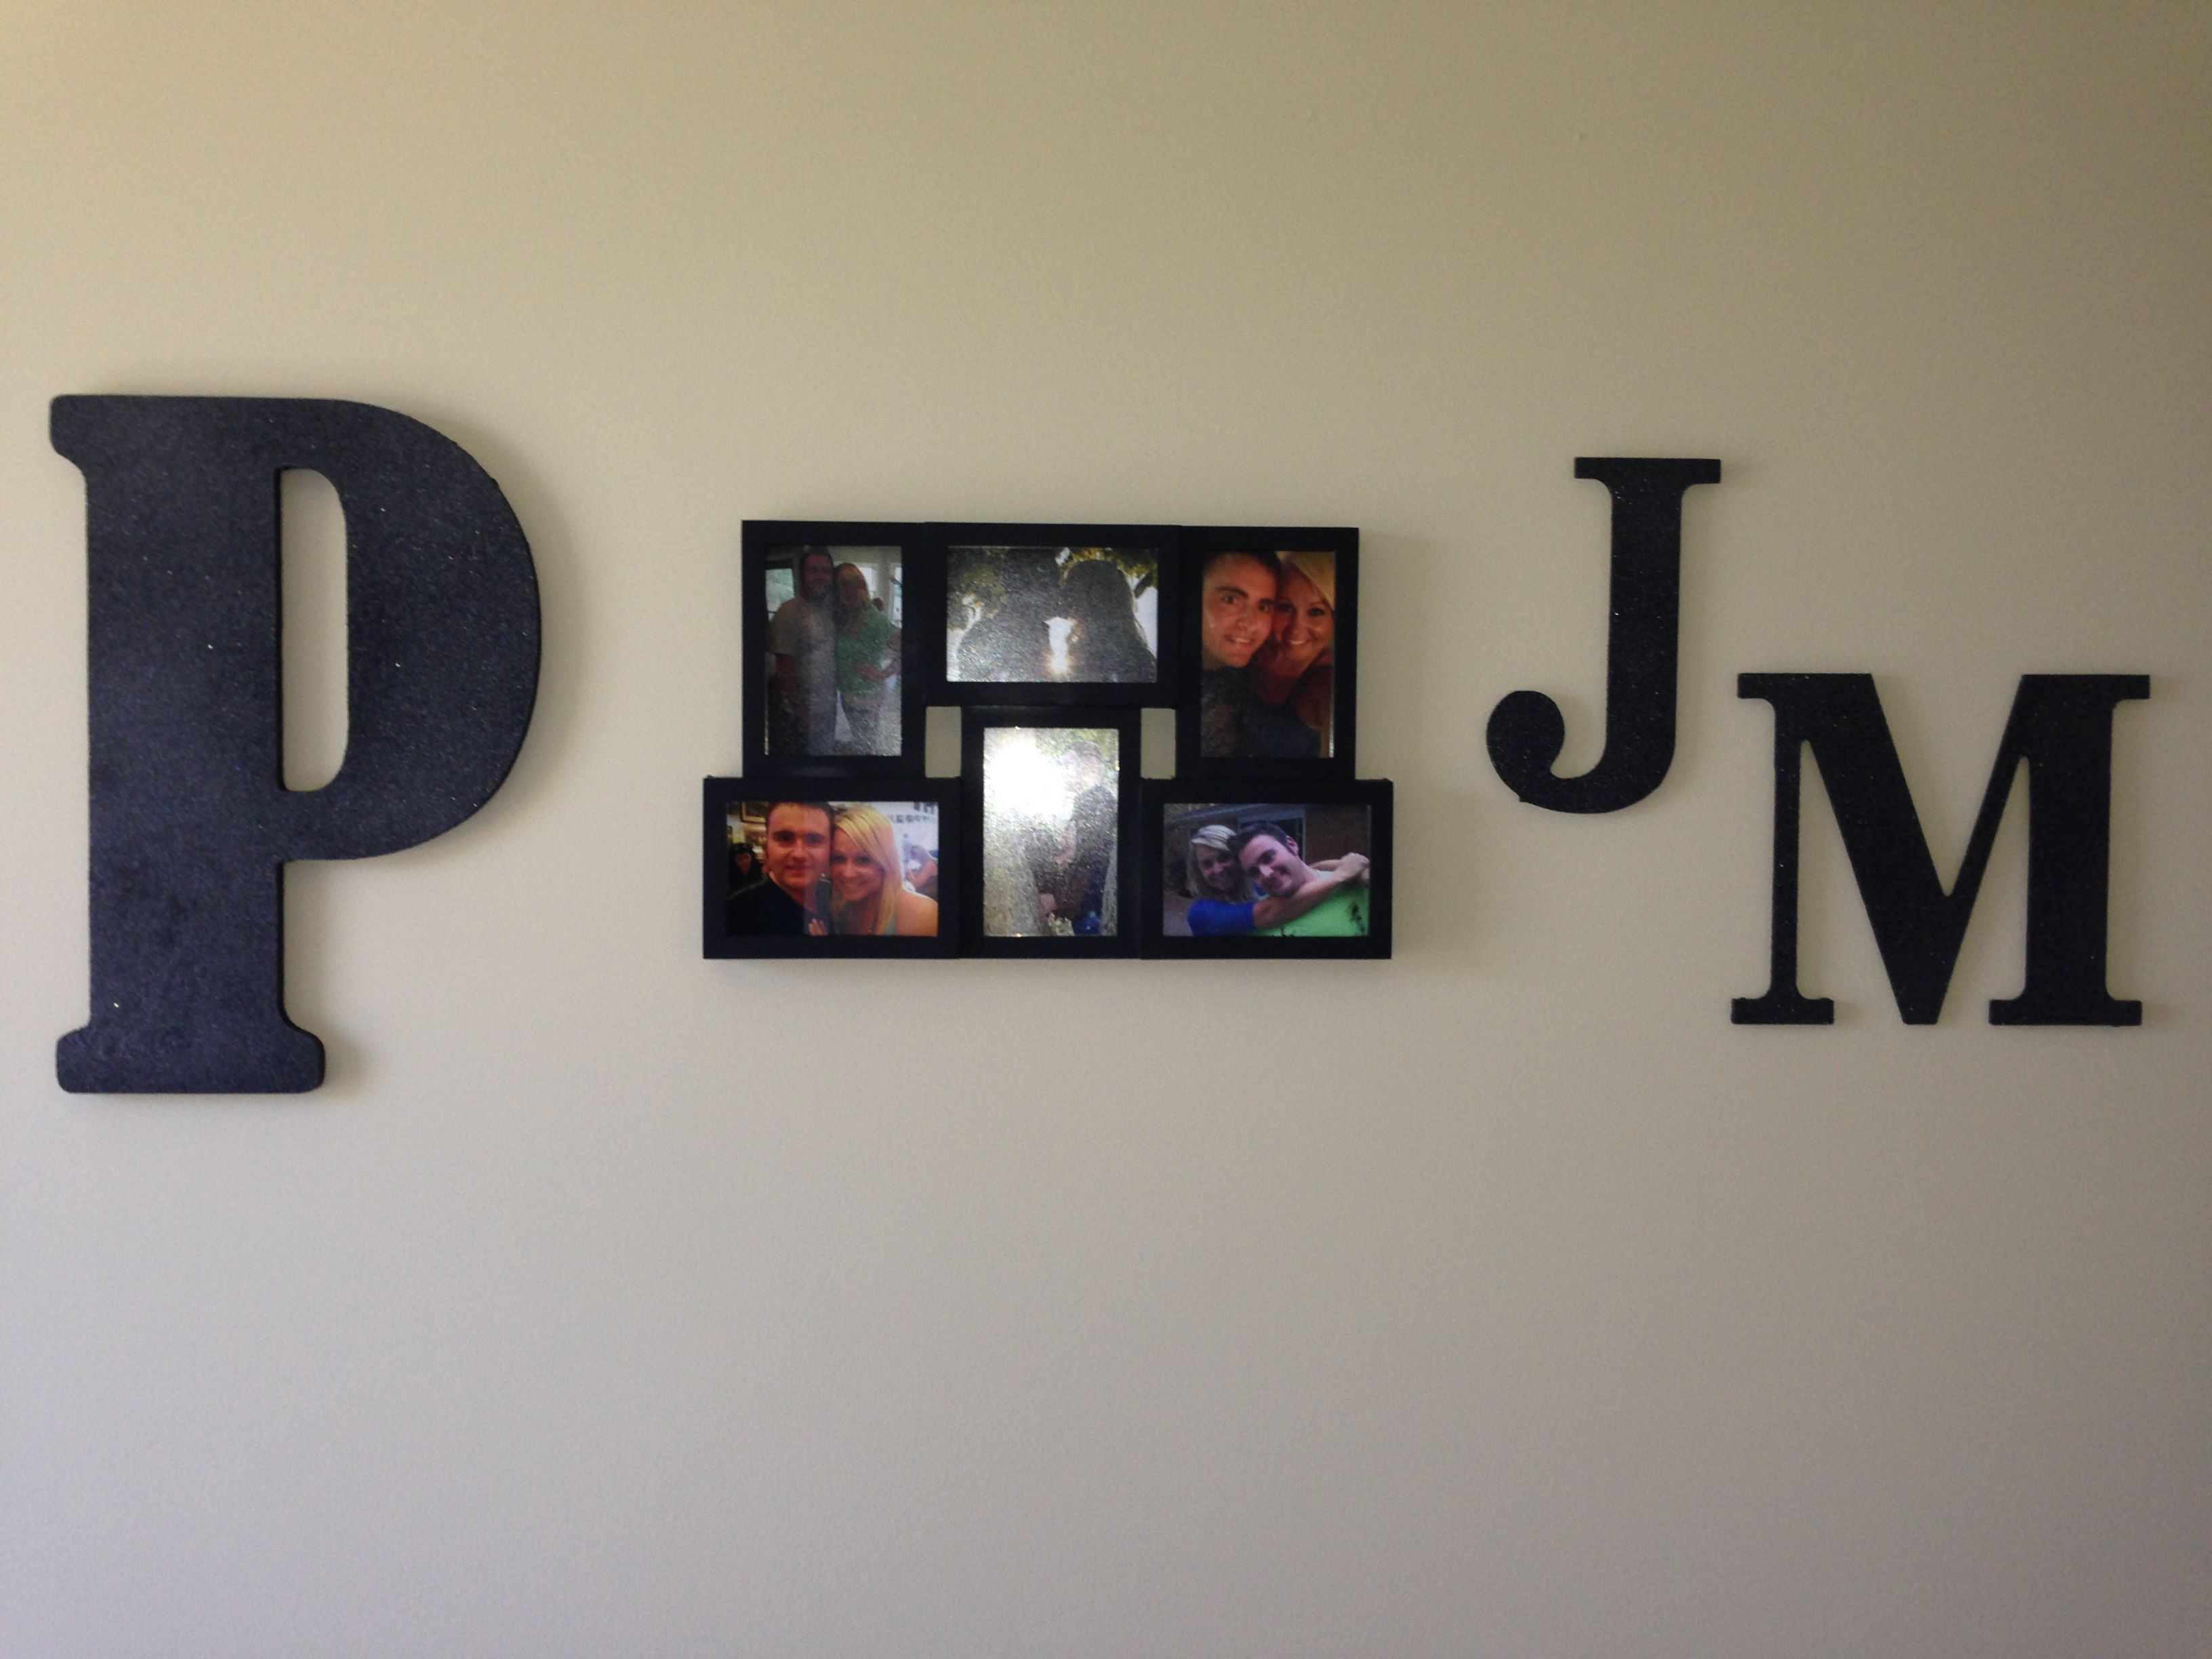 Bedroom Decor Wooden Initial Letters From Hobby Lobby Painted Black